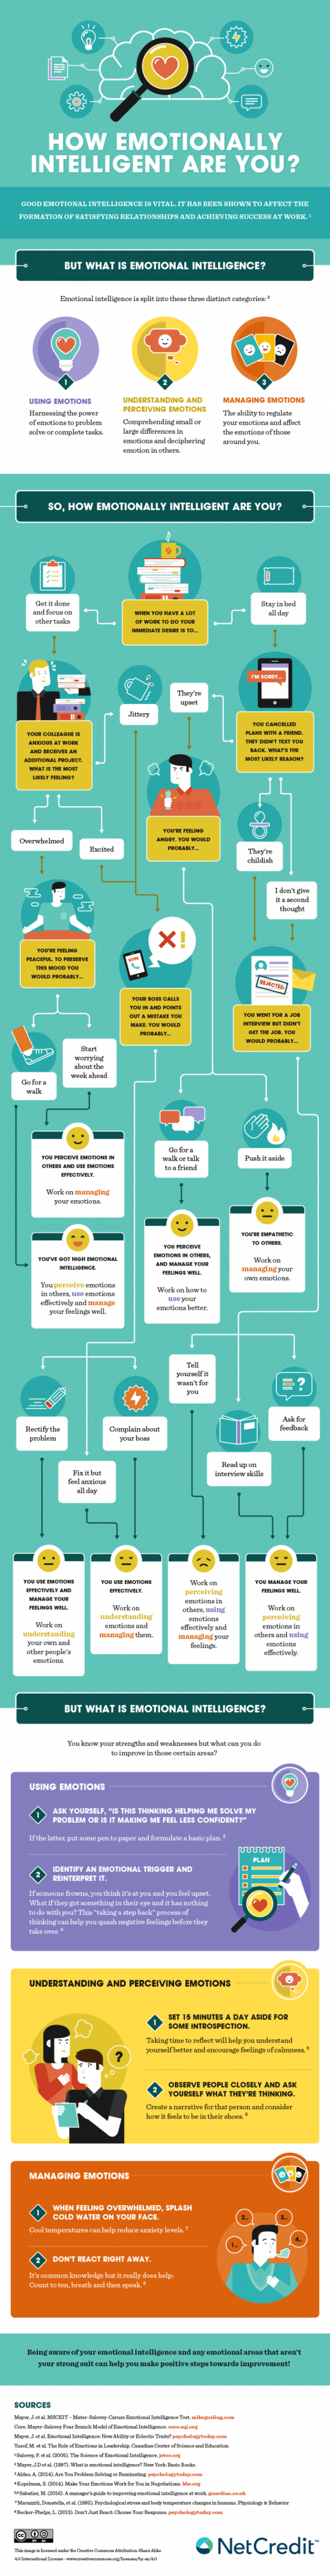 How To Improve Your Emotional Intelligence